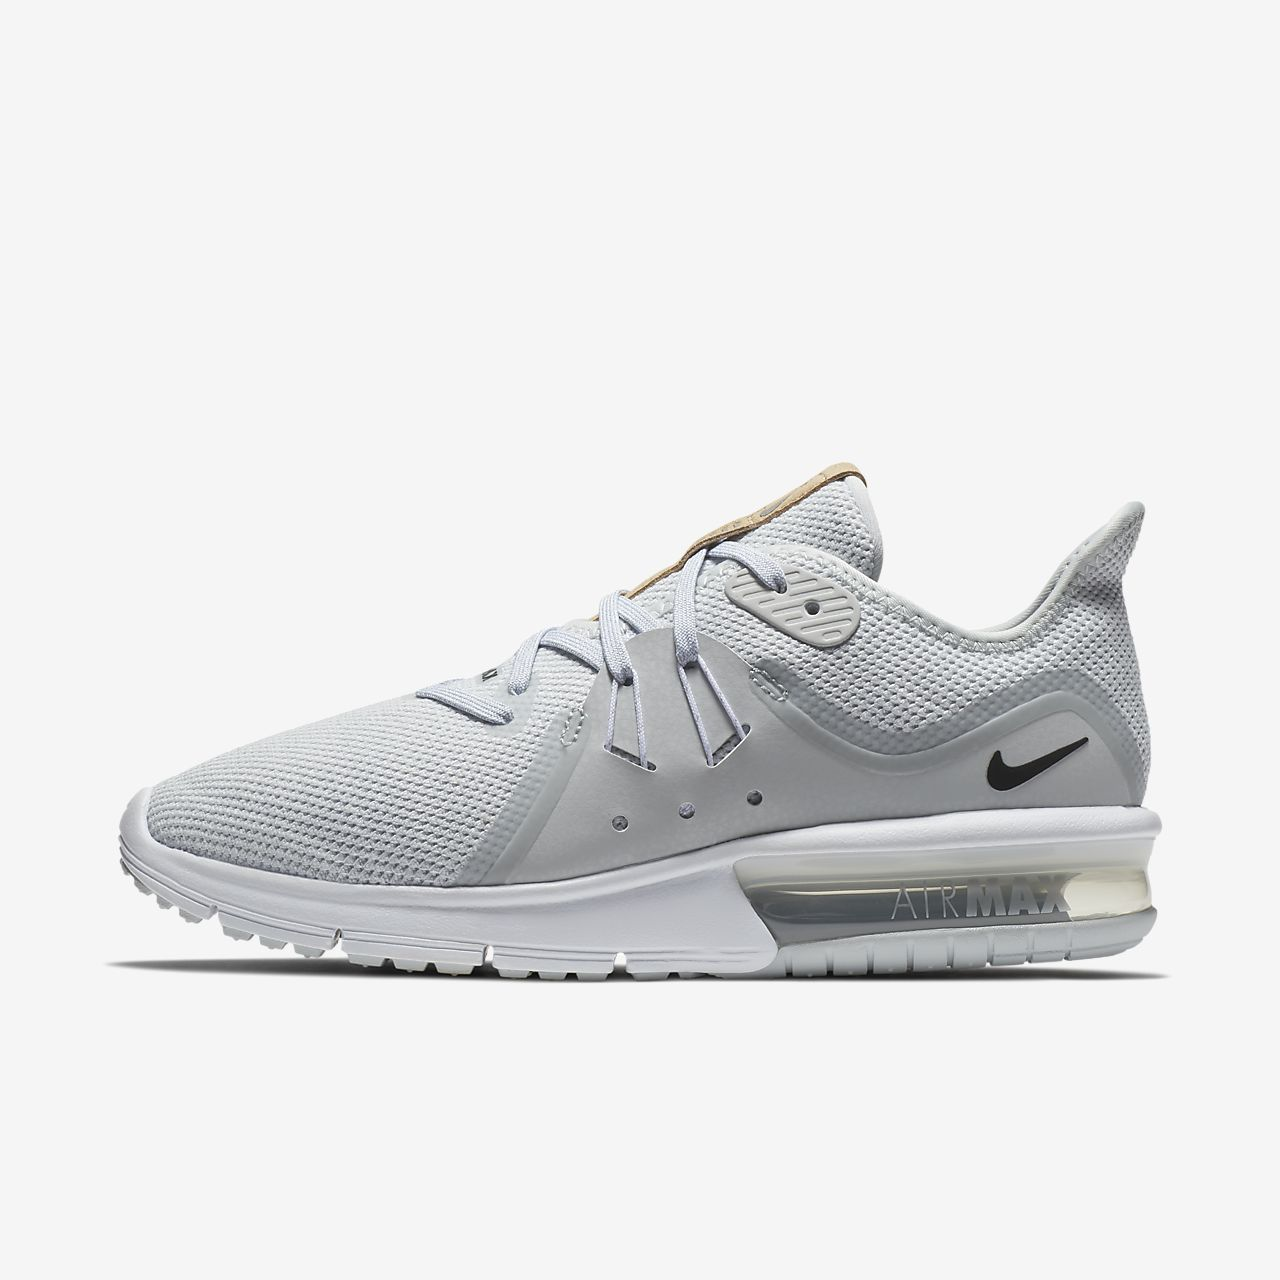 buy popular 319e7 e3b99 ... Nike Air Max Sequent 3 Women s Shoe